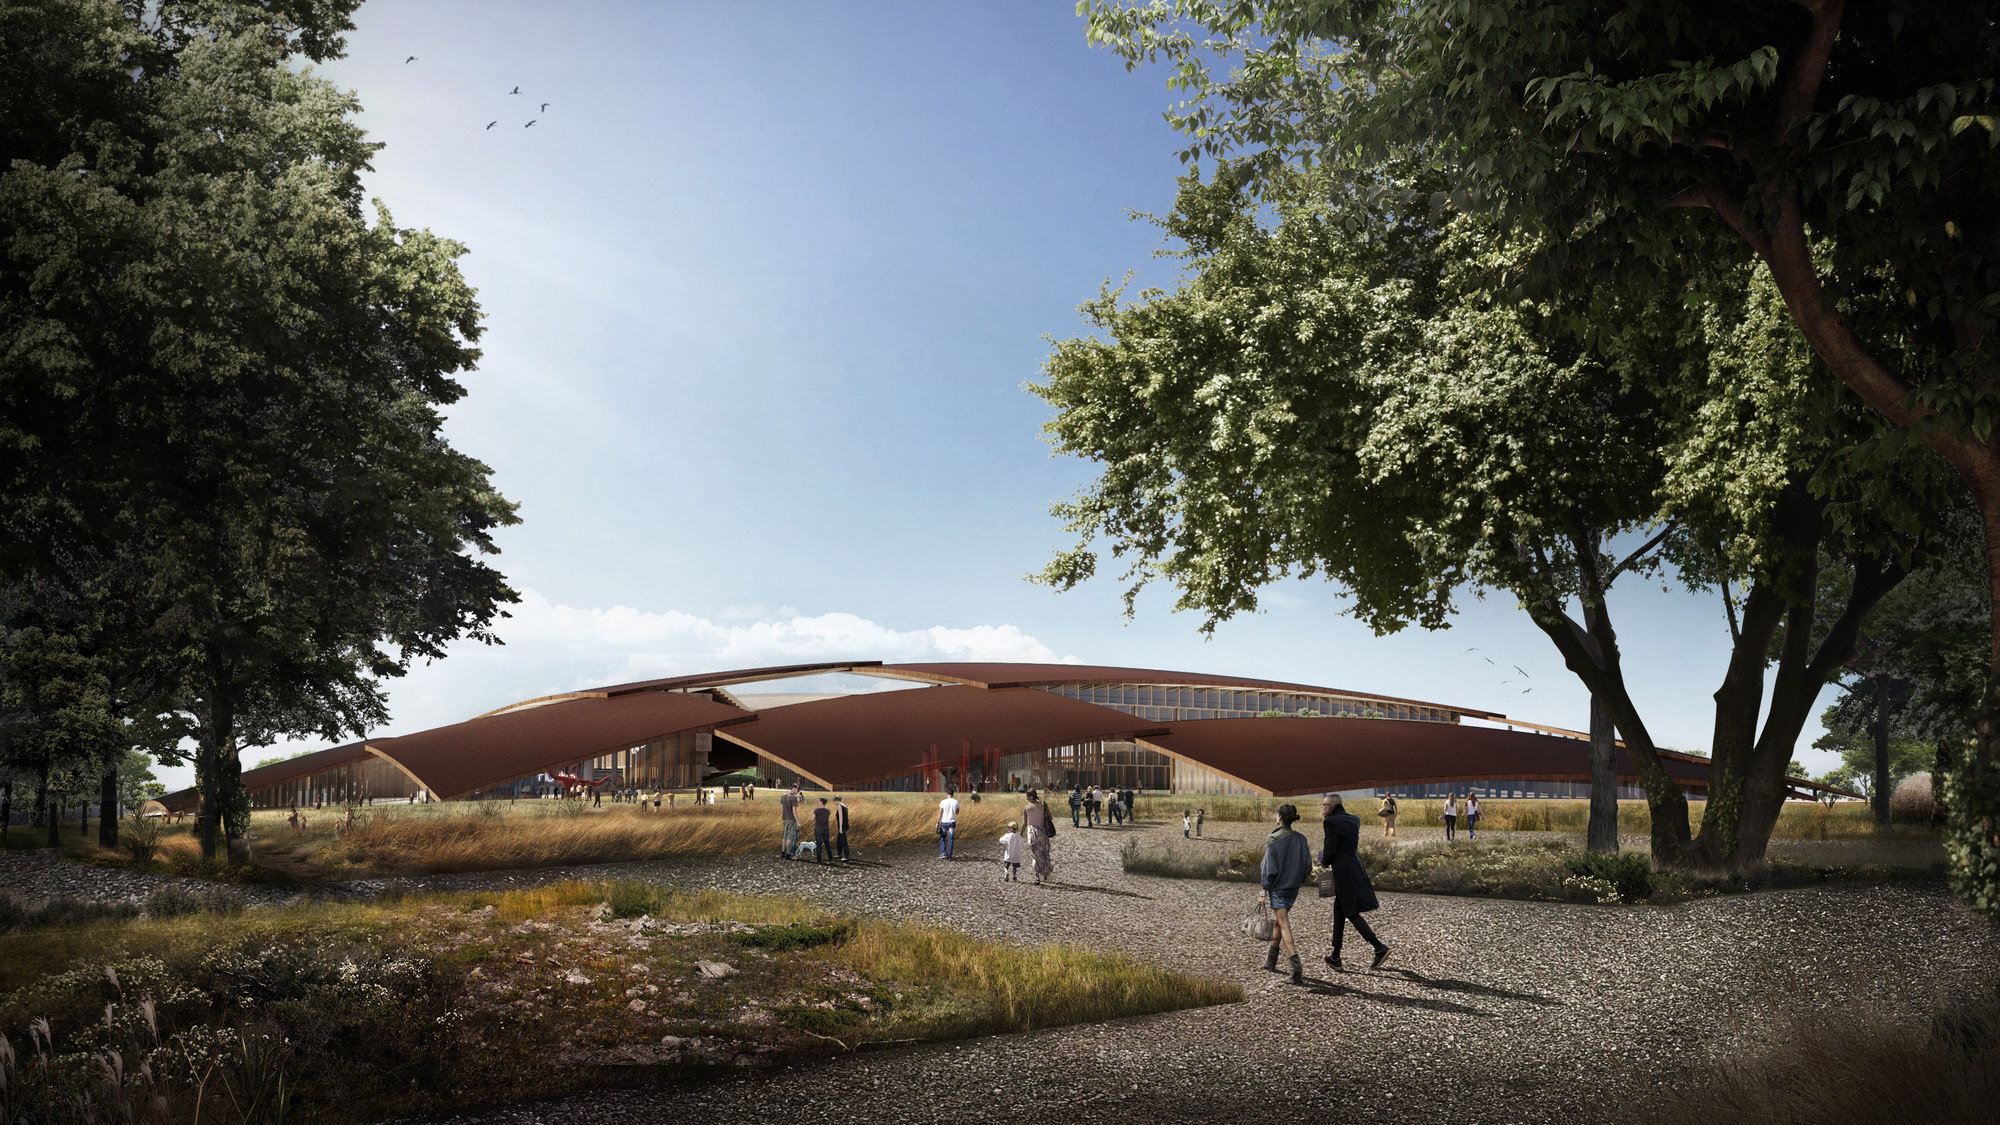 Gallery Of Big Reveals Plans For Massive Rodeo And